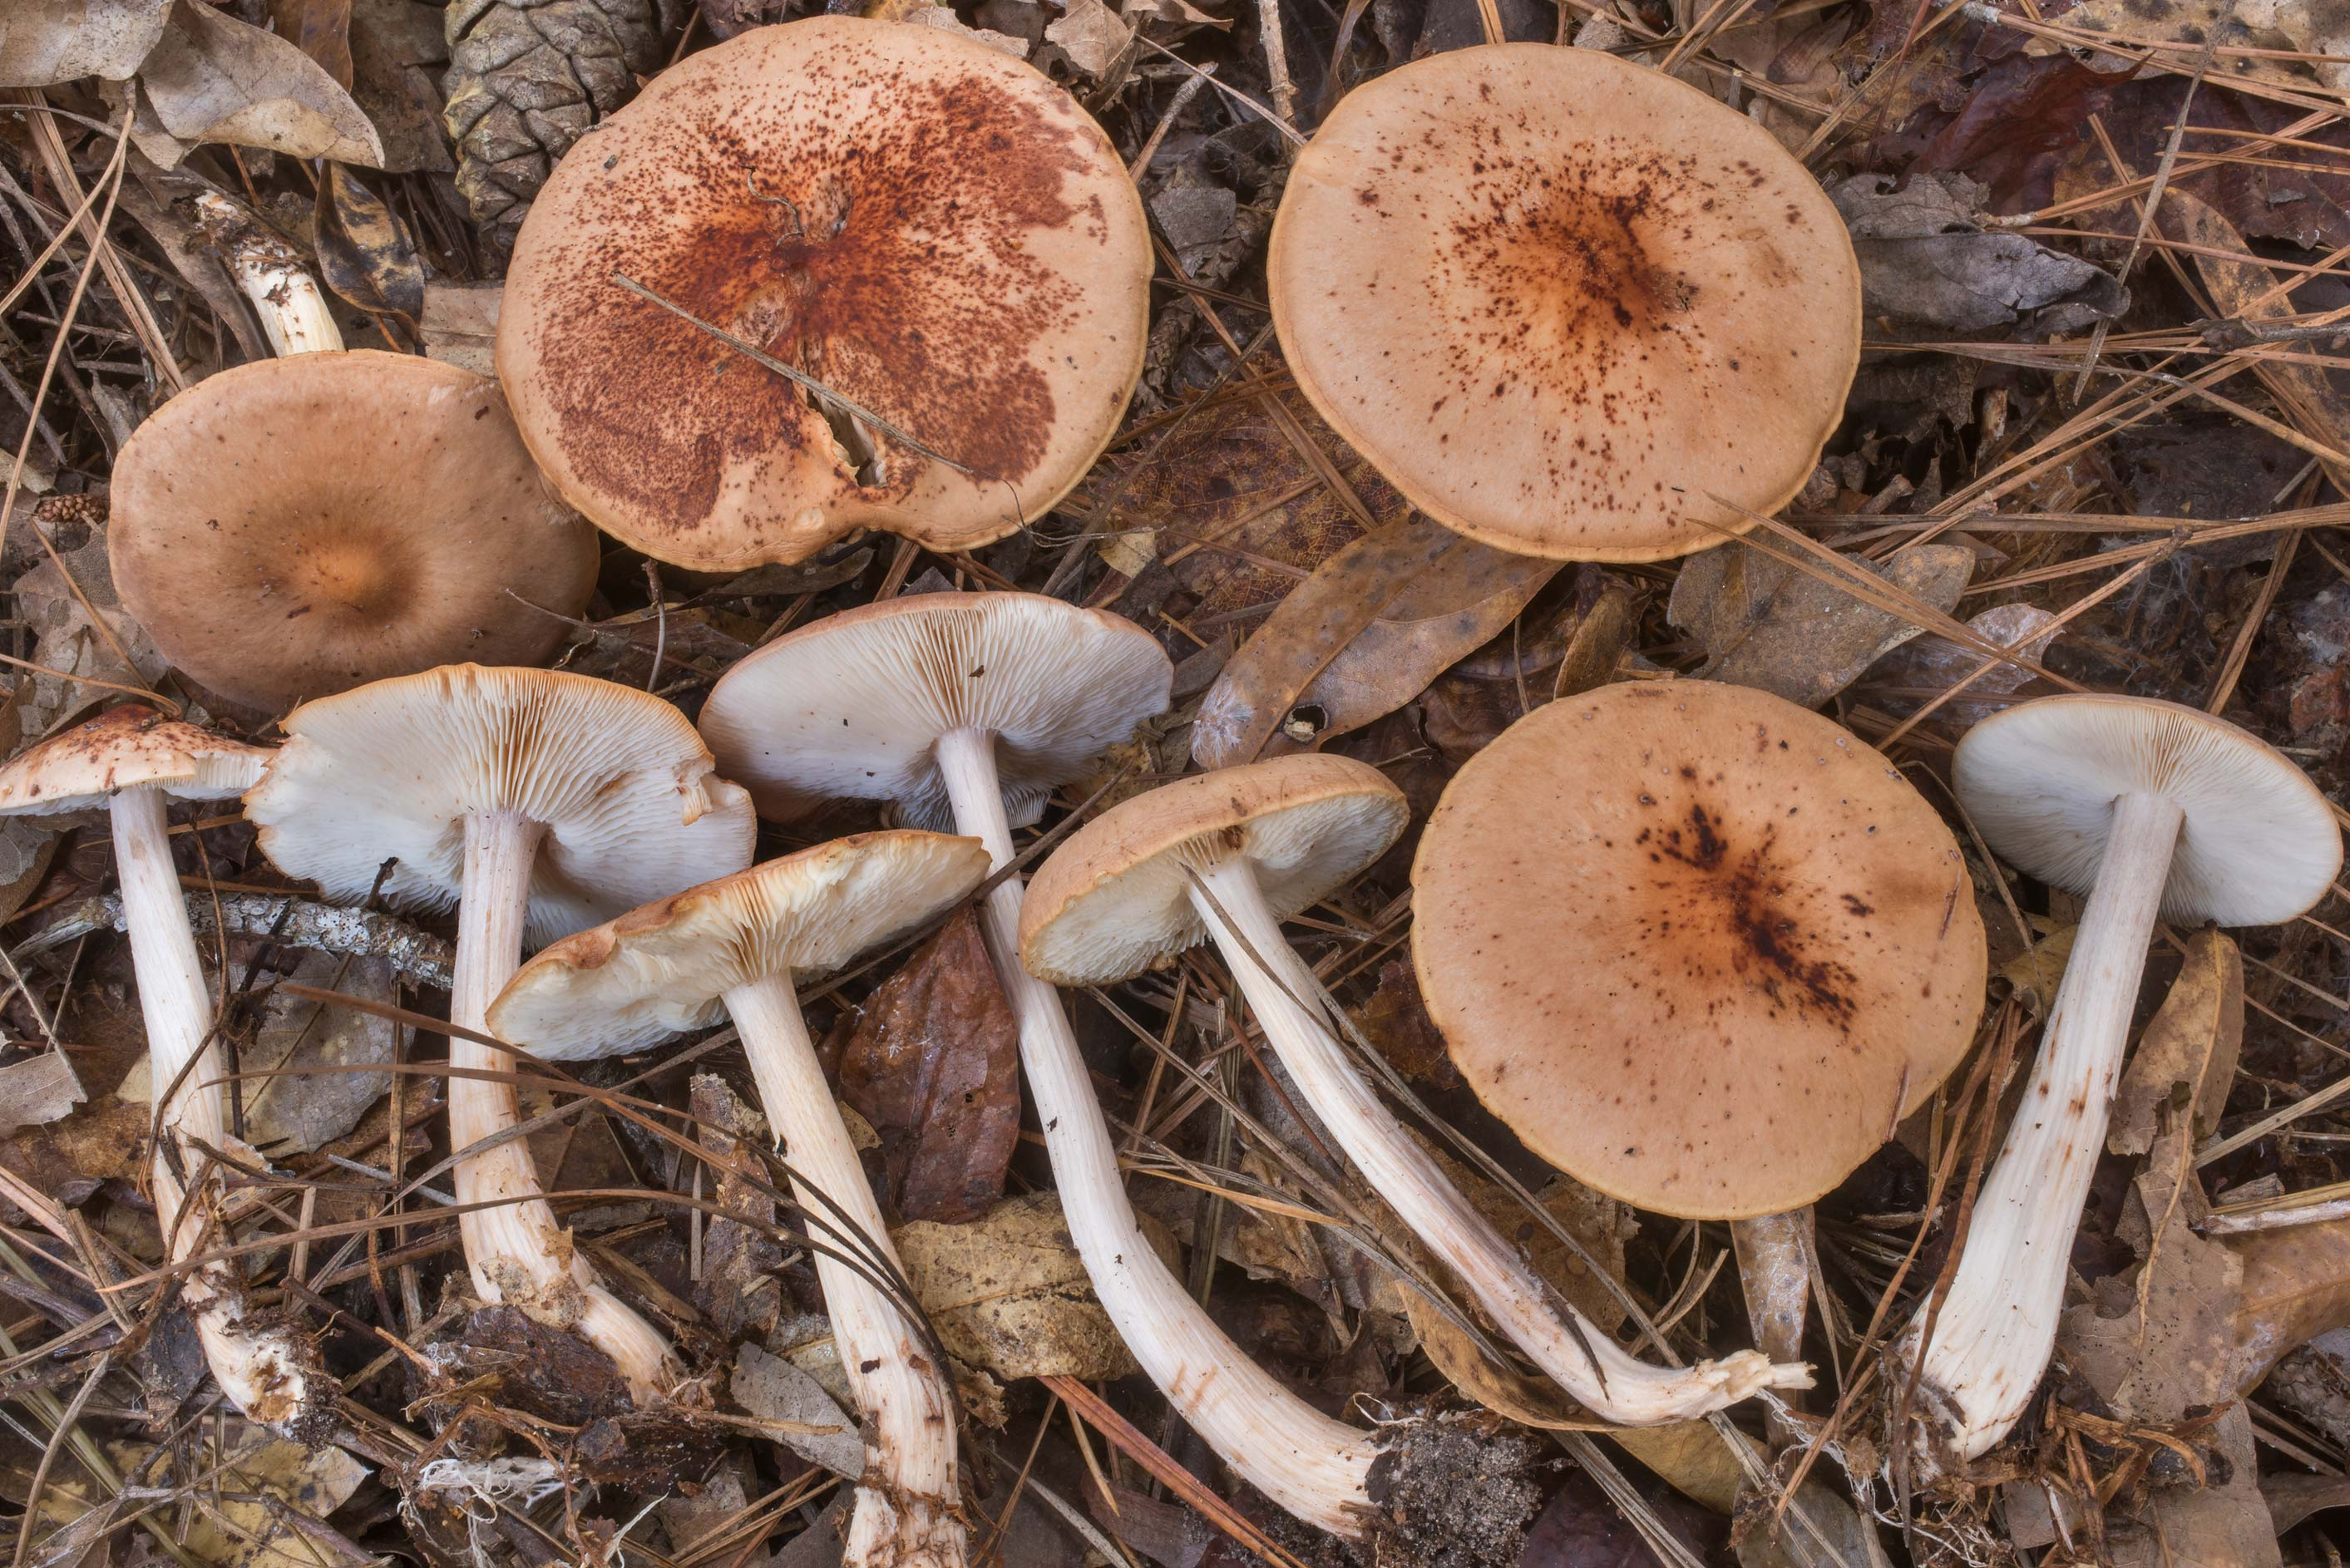 Group of spotted toughshank mushrooms...National Forest. Cleveland, Texas